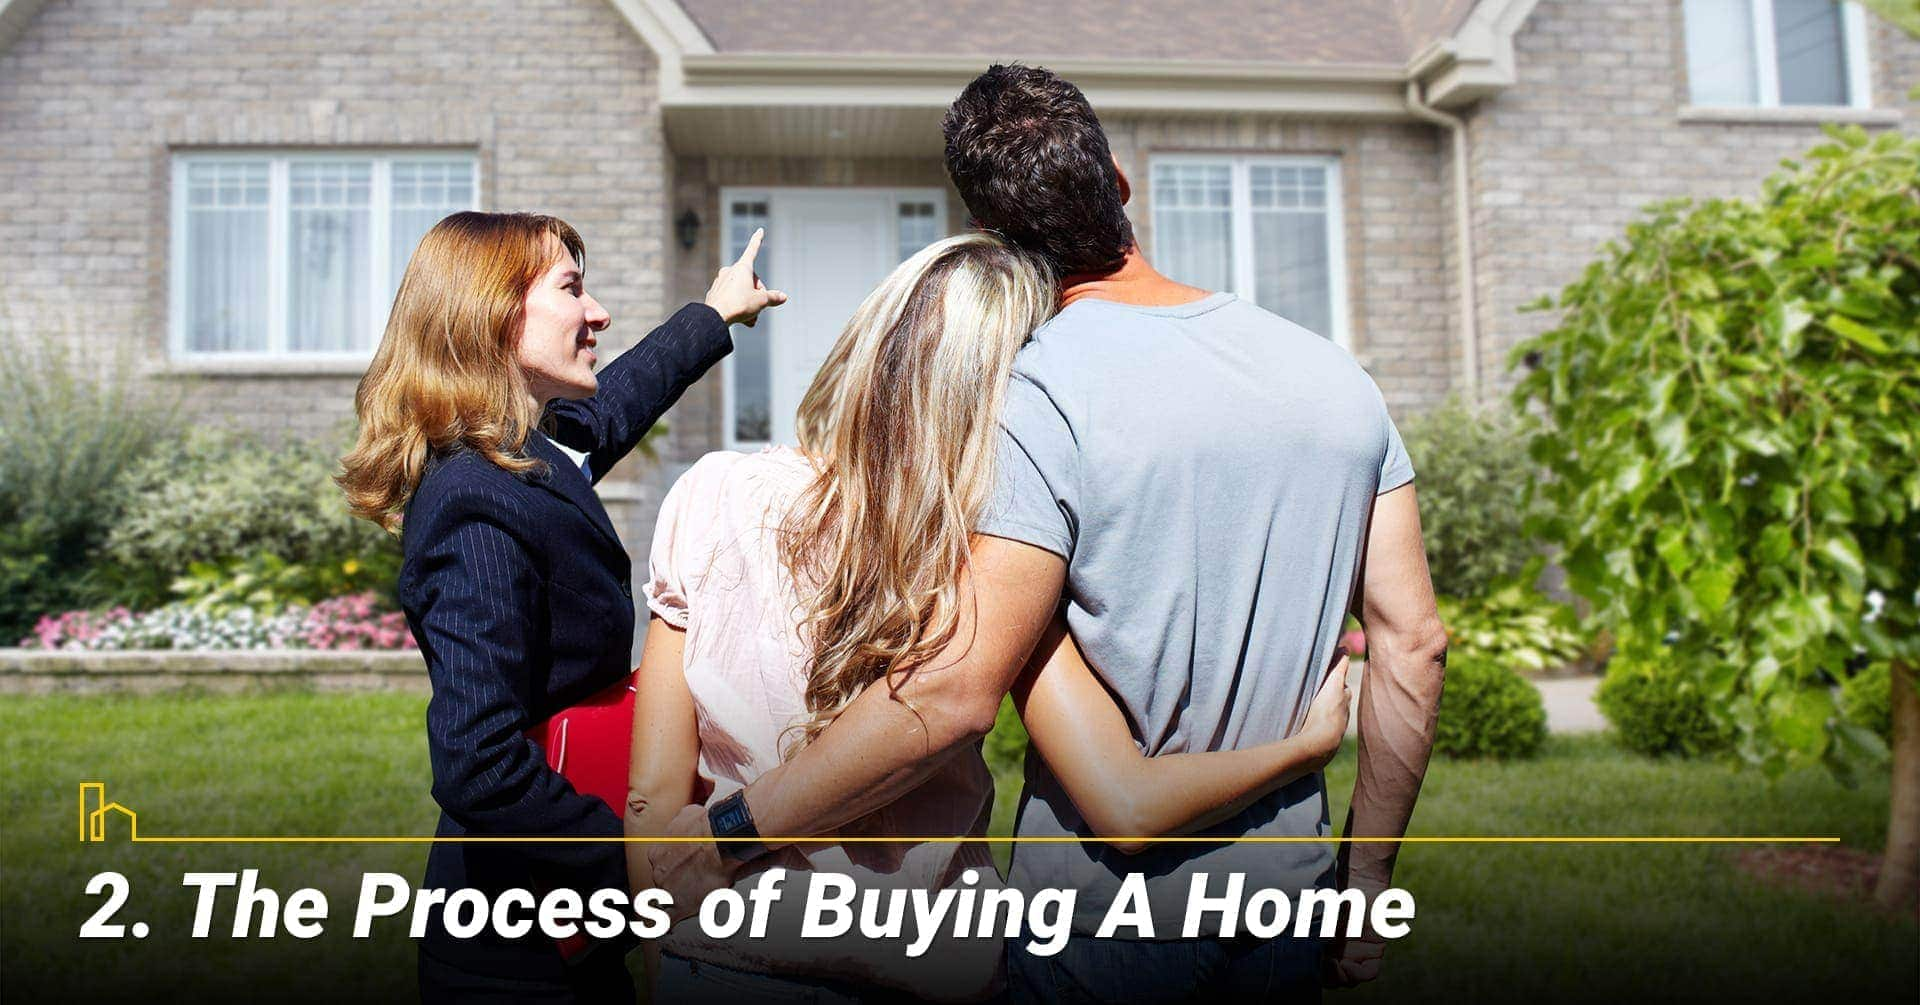 The Process of Buying A Home, steps to buy a home